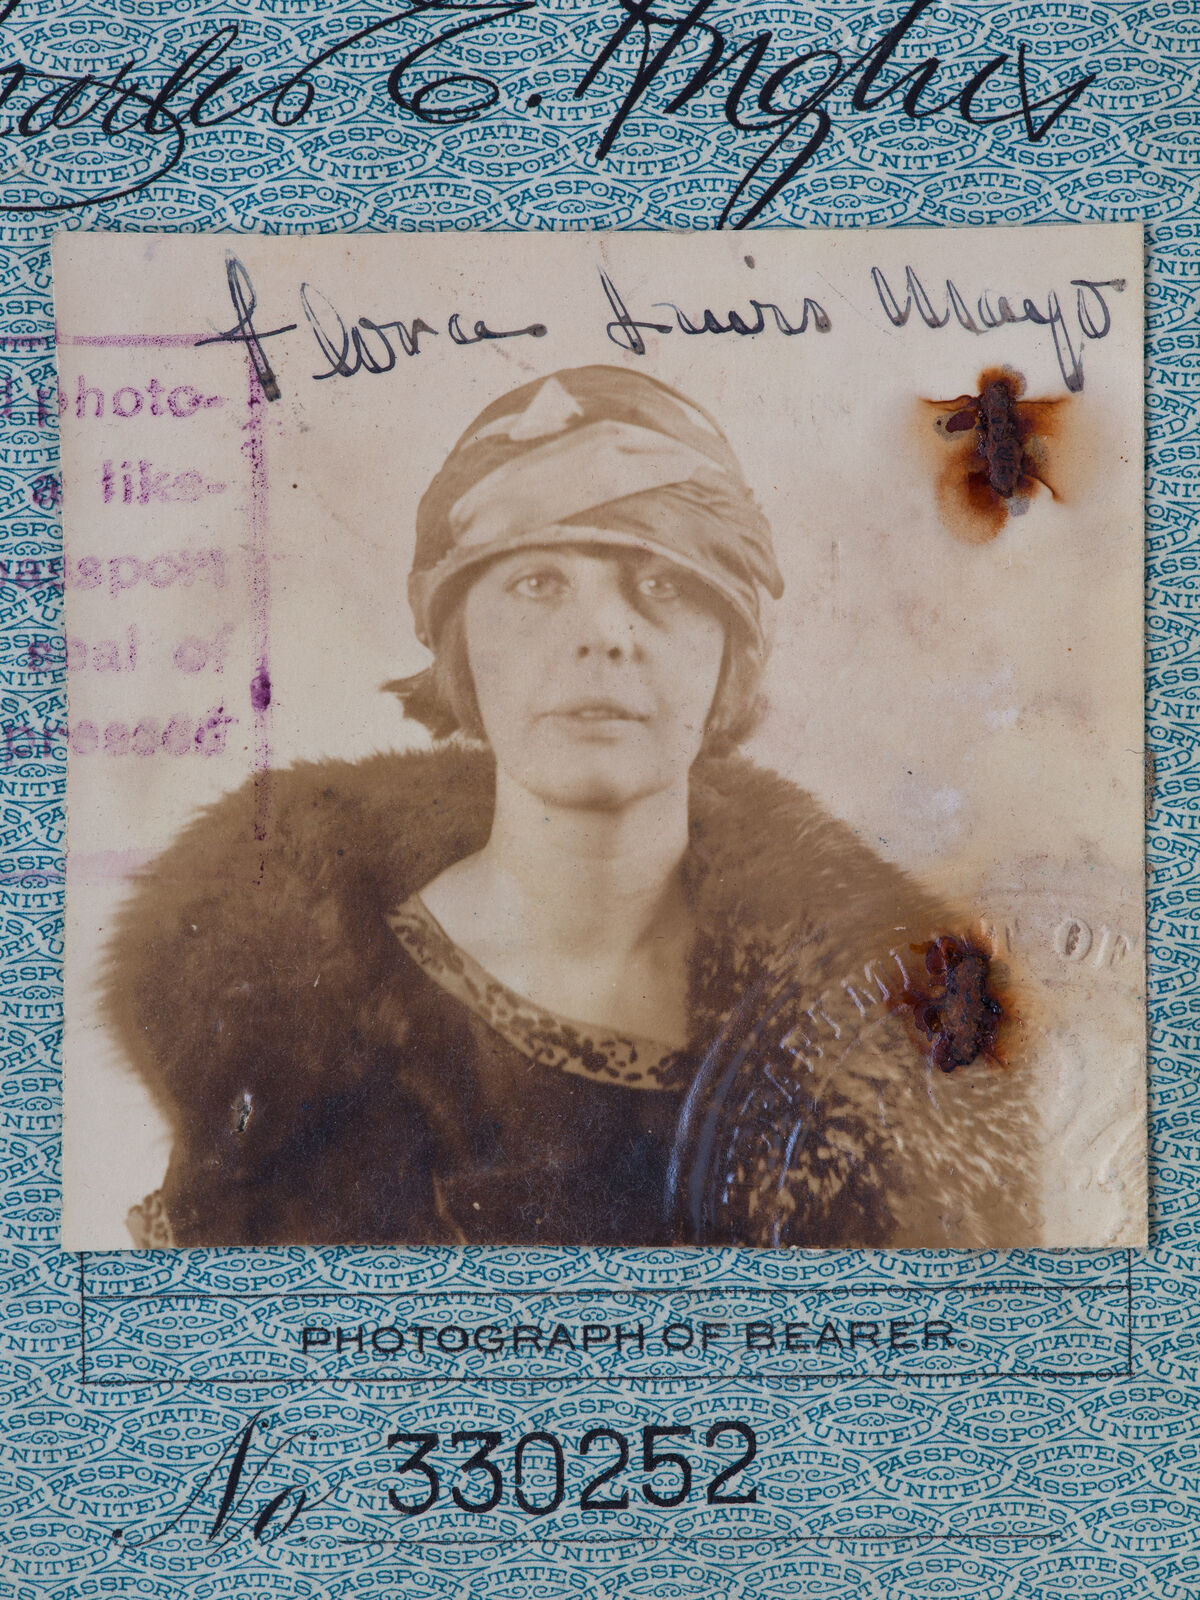 Production still from Teresa Hubbard and Alexander Birchler, Flora, 2017. Flora Mayo's passport issued 1923. Courtesy of the Artists and Tanya Bonakdar Gallery, New York and Lora Reynolds Gallery, Austin.